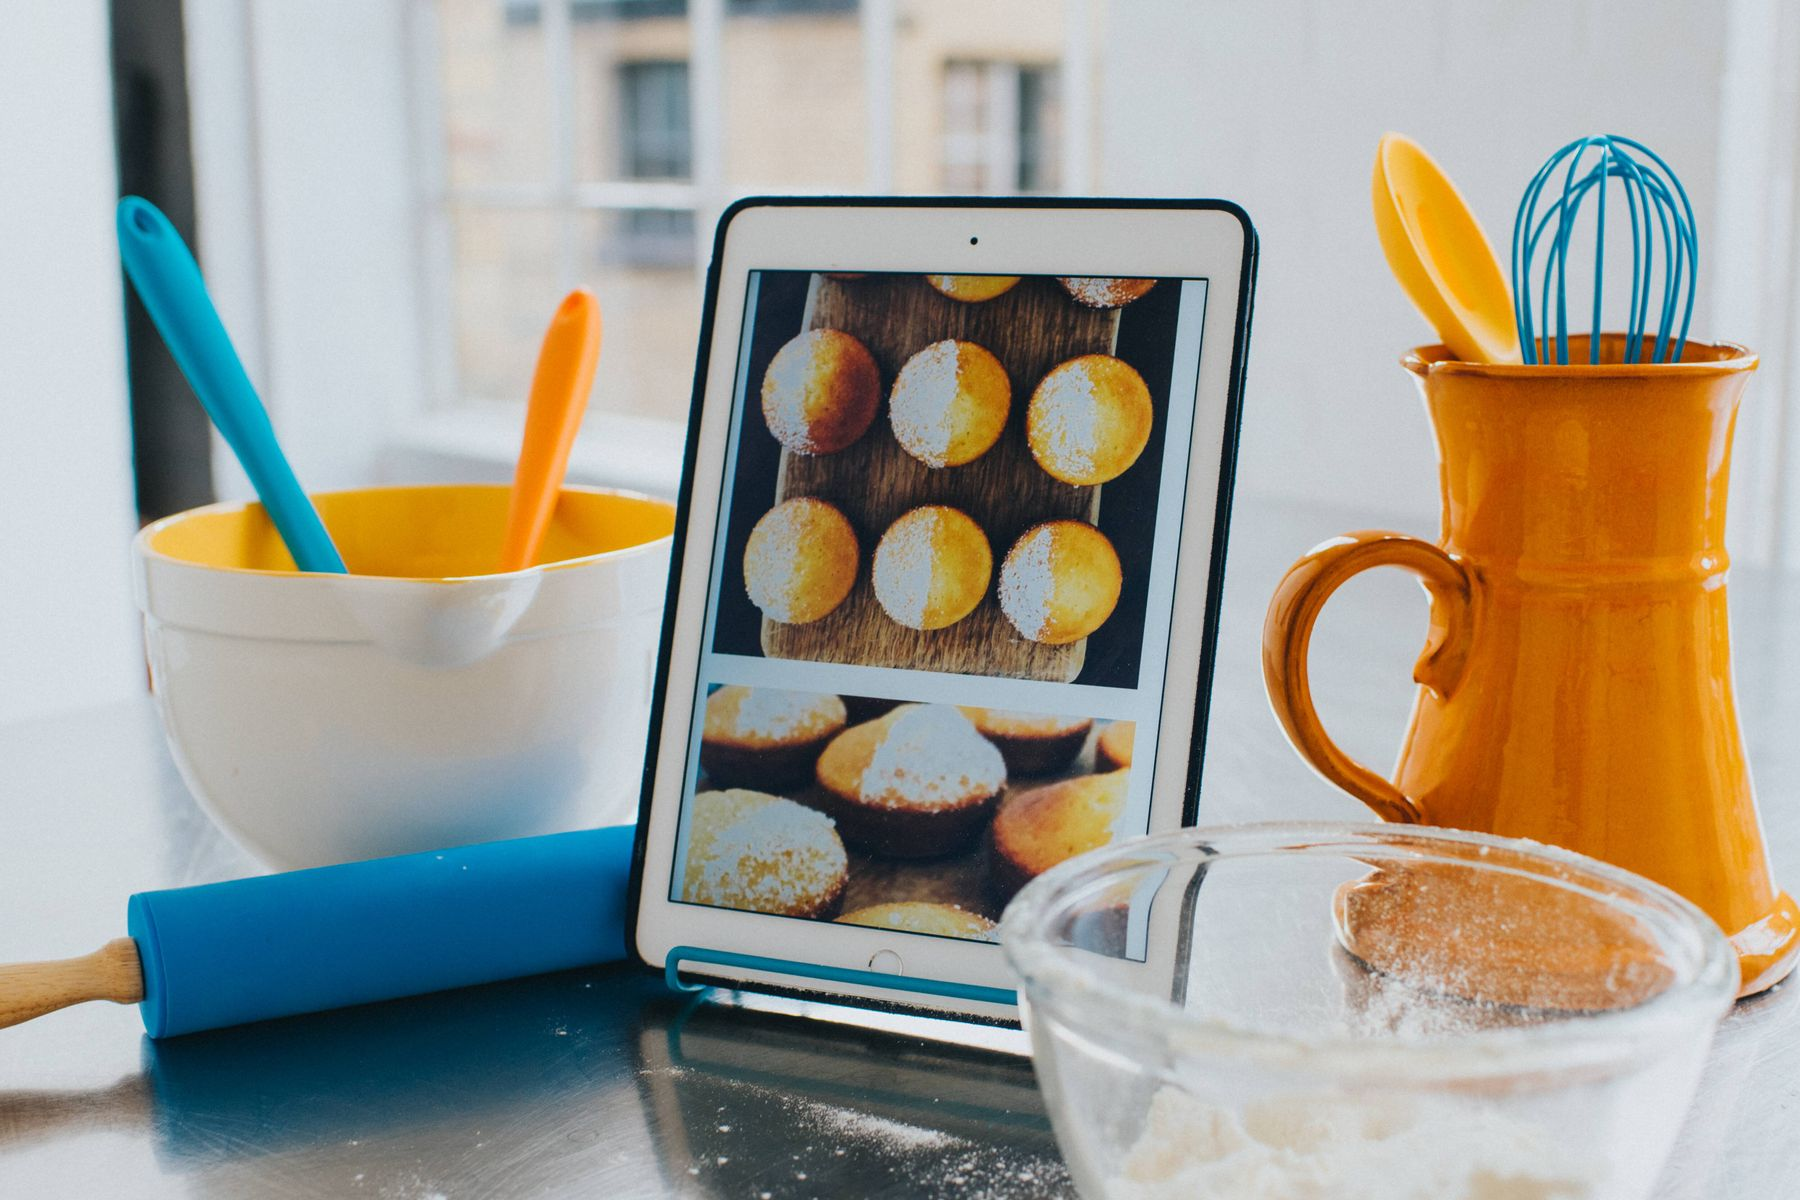 How to clean an iPad screen: iPad being used for baking recipe